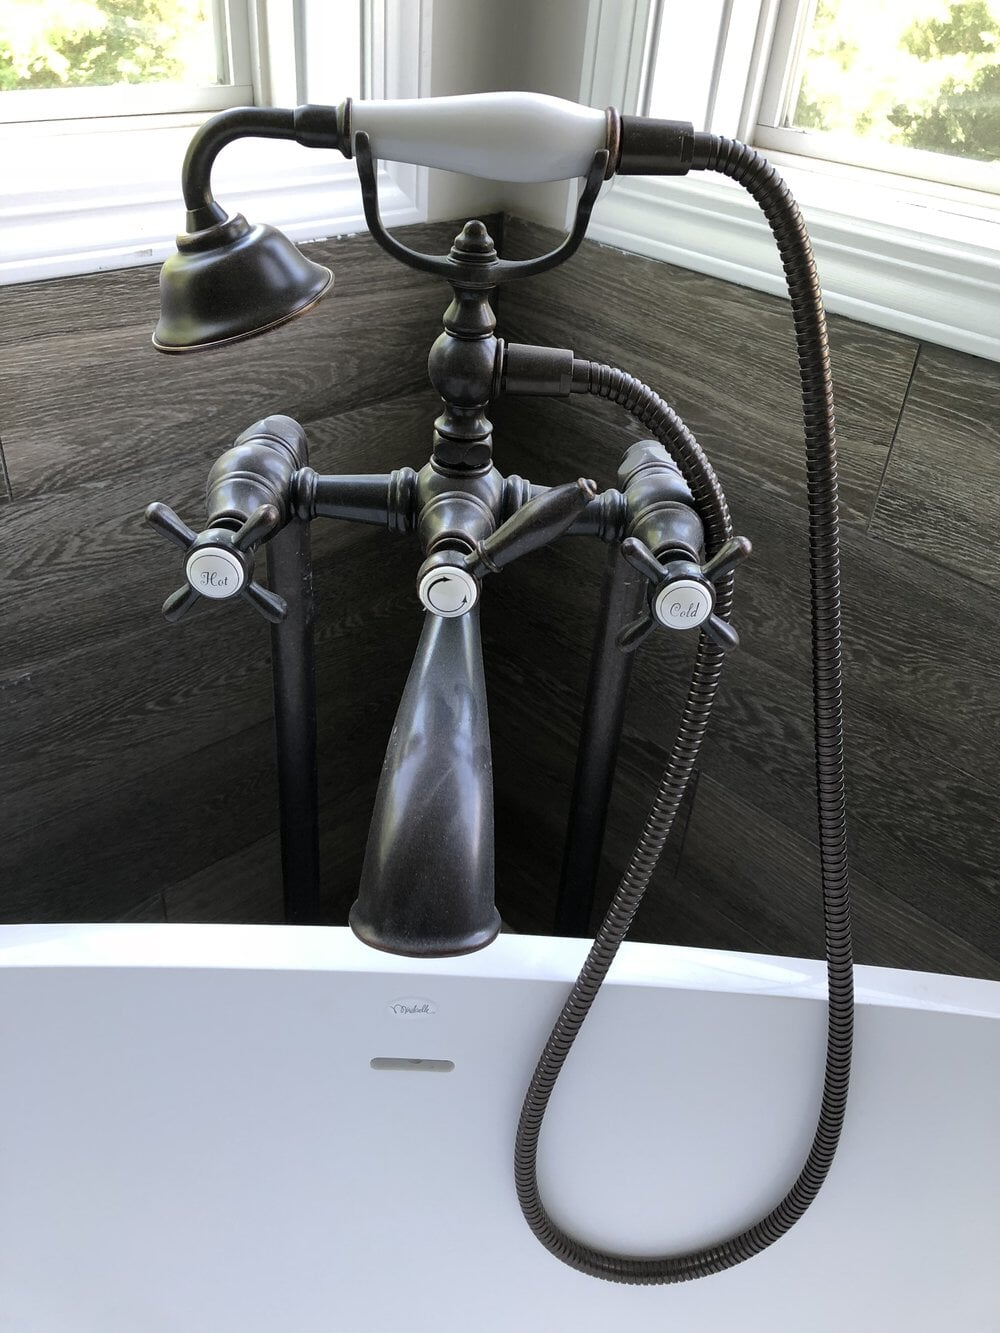 Soaking tub faucet with sprayer in Davidson, NC from LITTLE Wood Flooring & Cabinetry